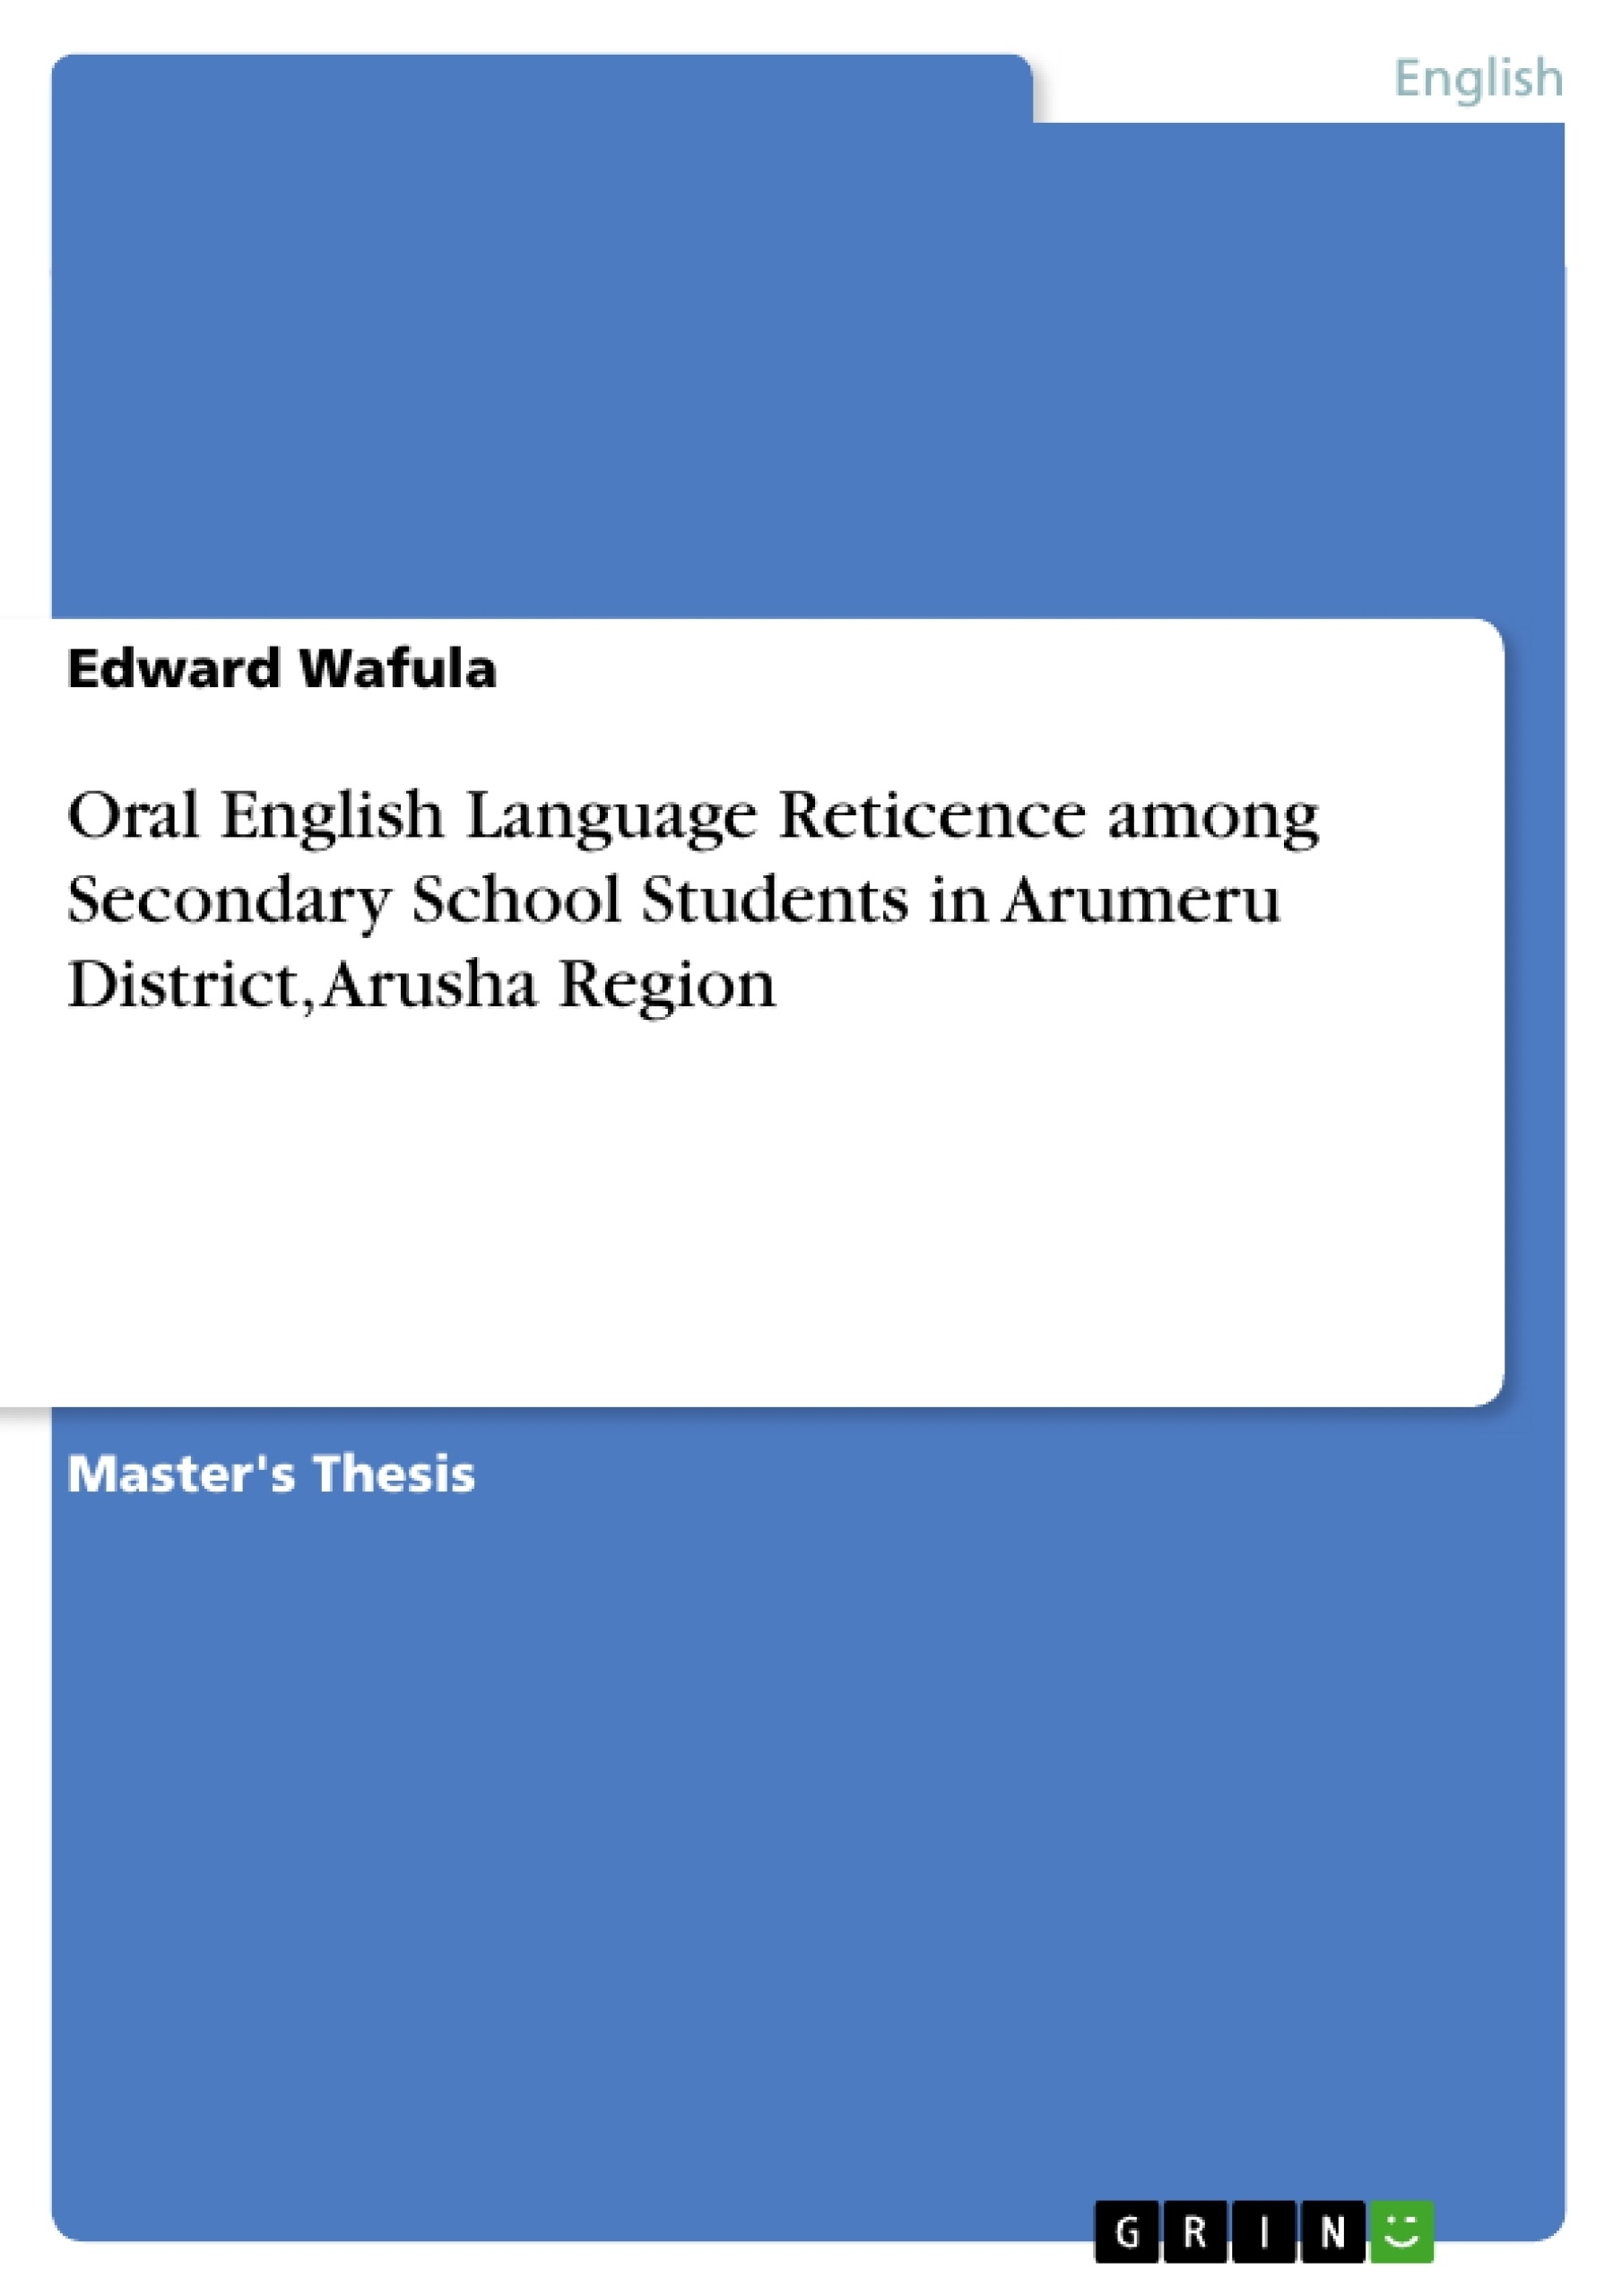 Title: Oral English Language Reticence among Secondary School Students in Arumeru District, Arusha Region